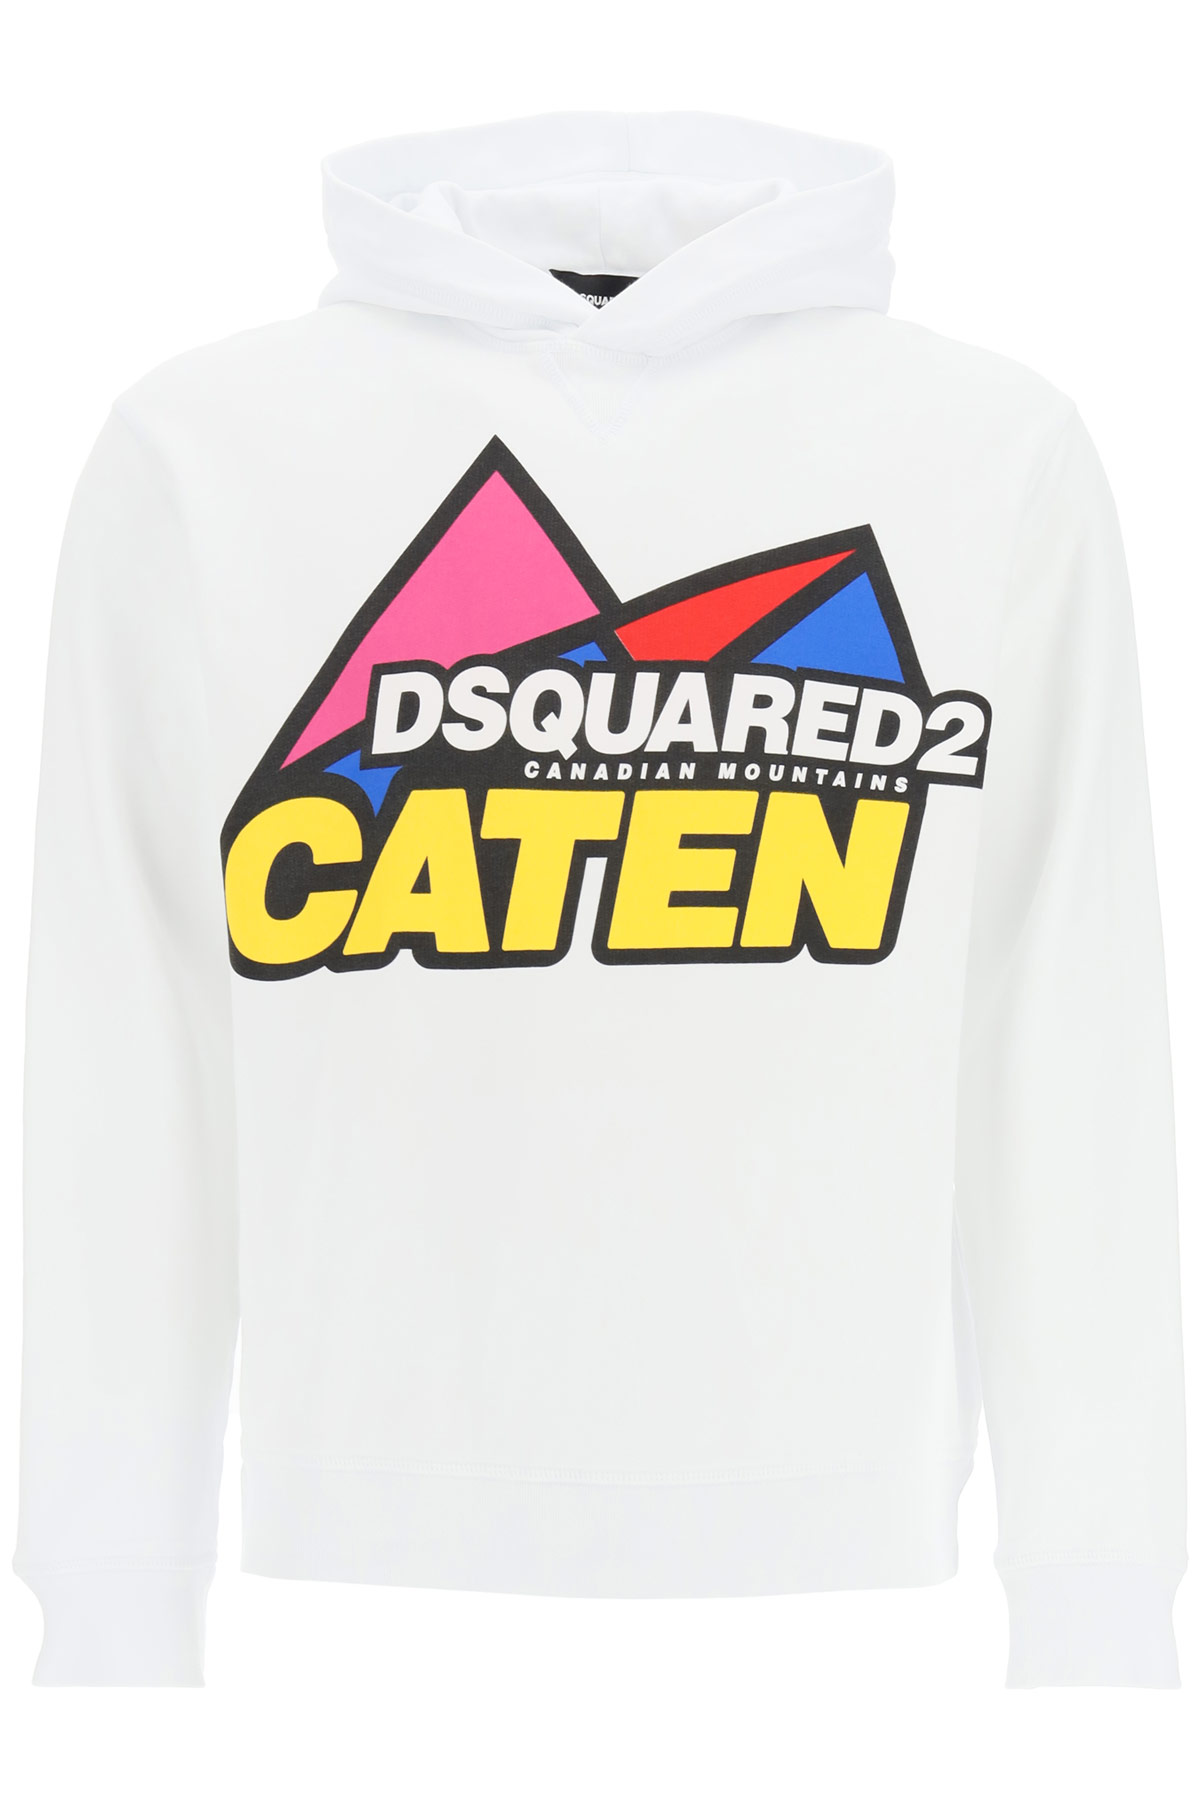 DSQUARED2 CANADIAN MOUNTAINS HOODIE XL White, Yellow, Red Cotton